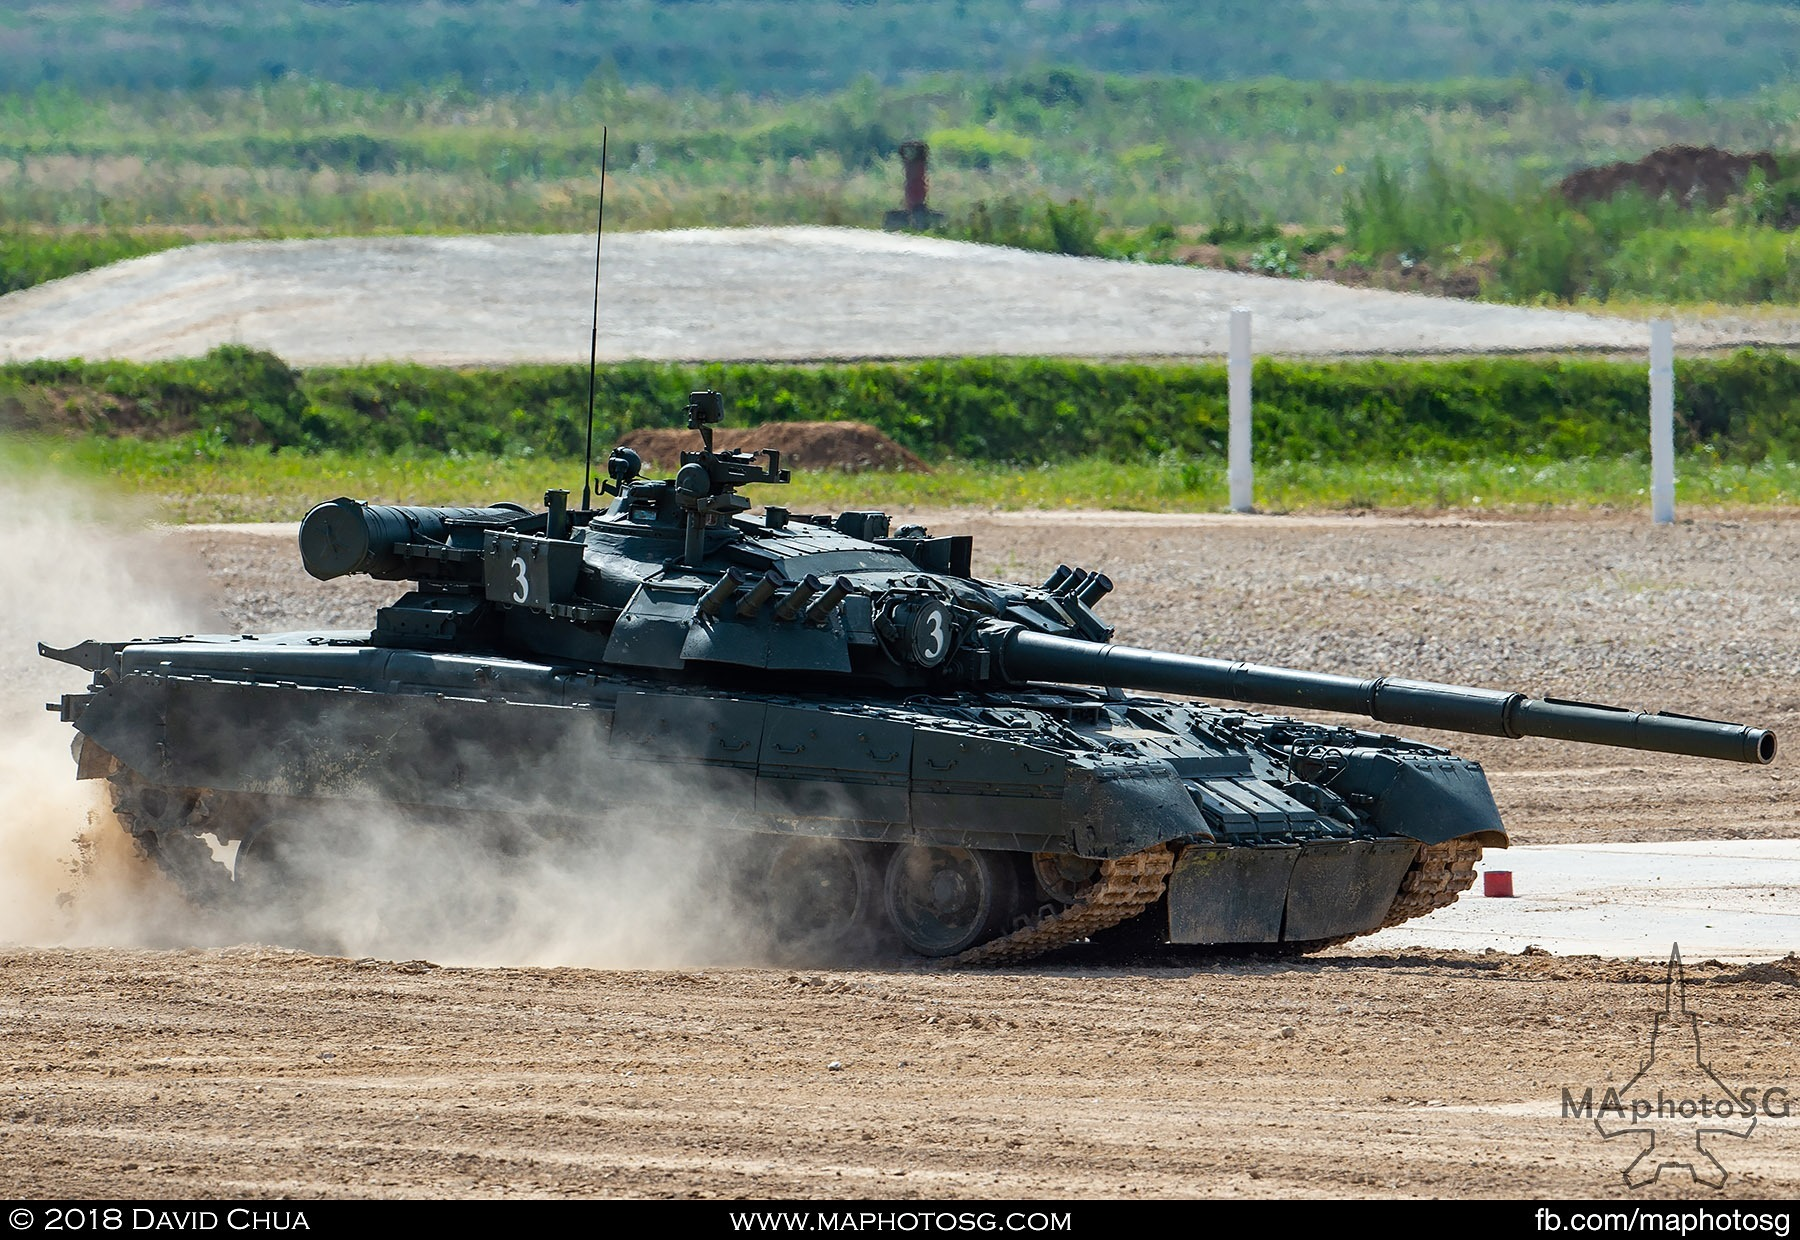 16. T-80E1 MBT makes an emergency stop during the tank ballet performance